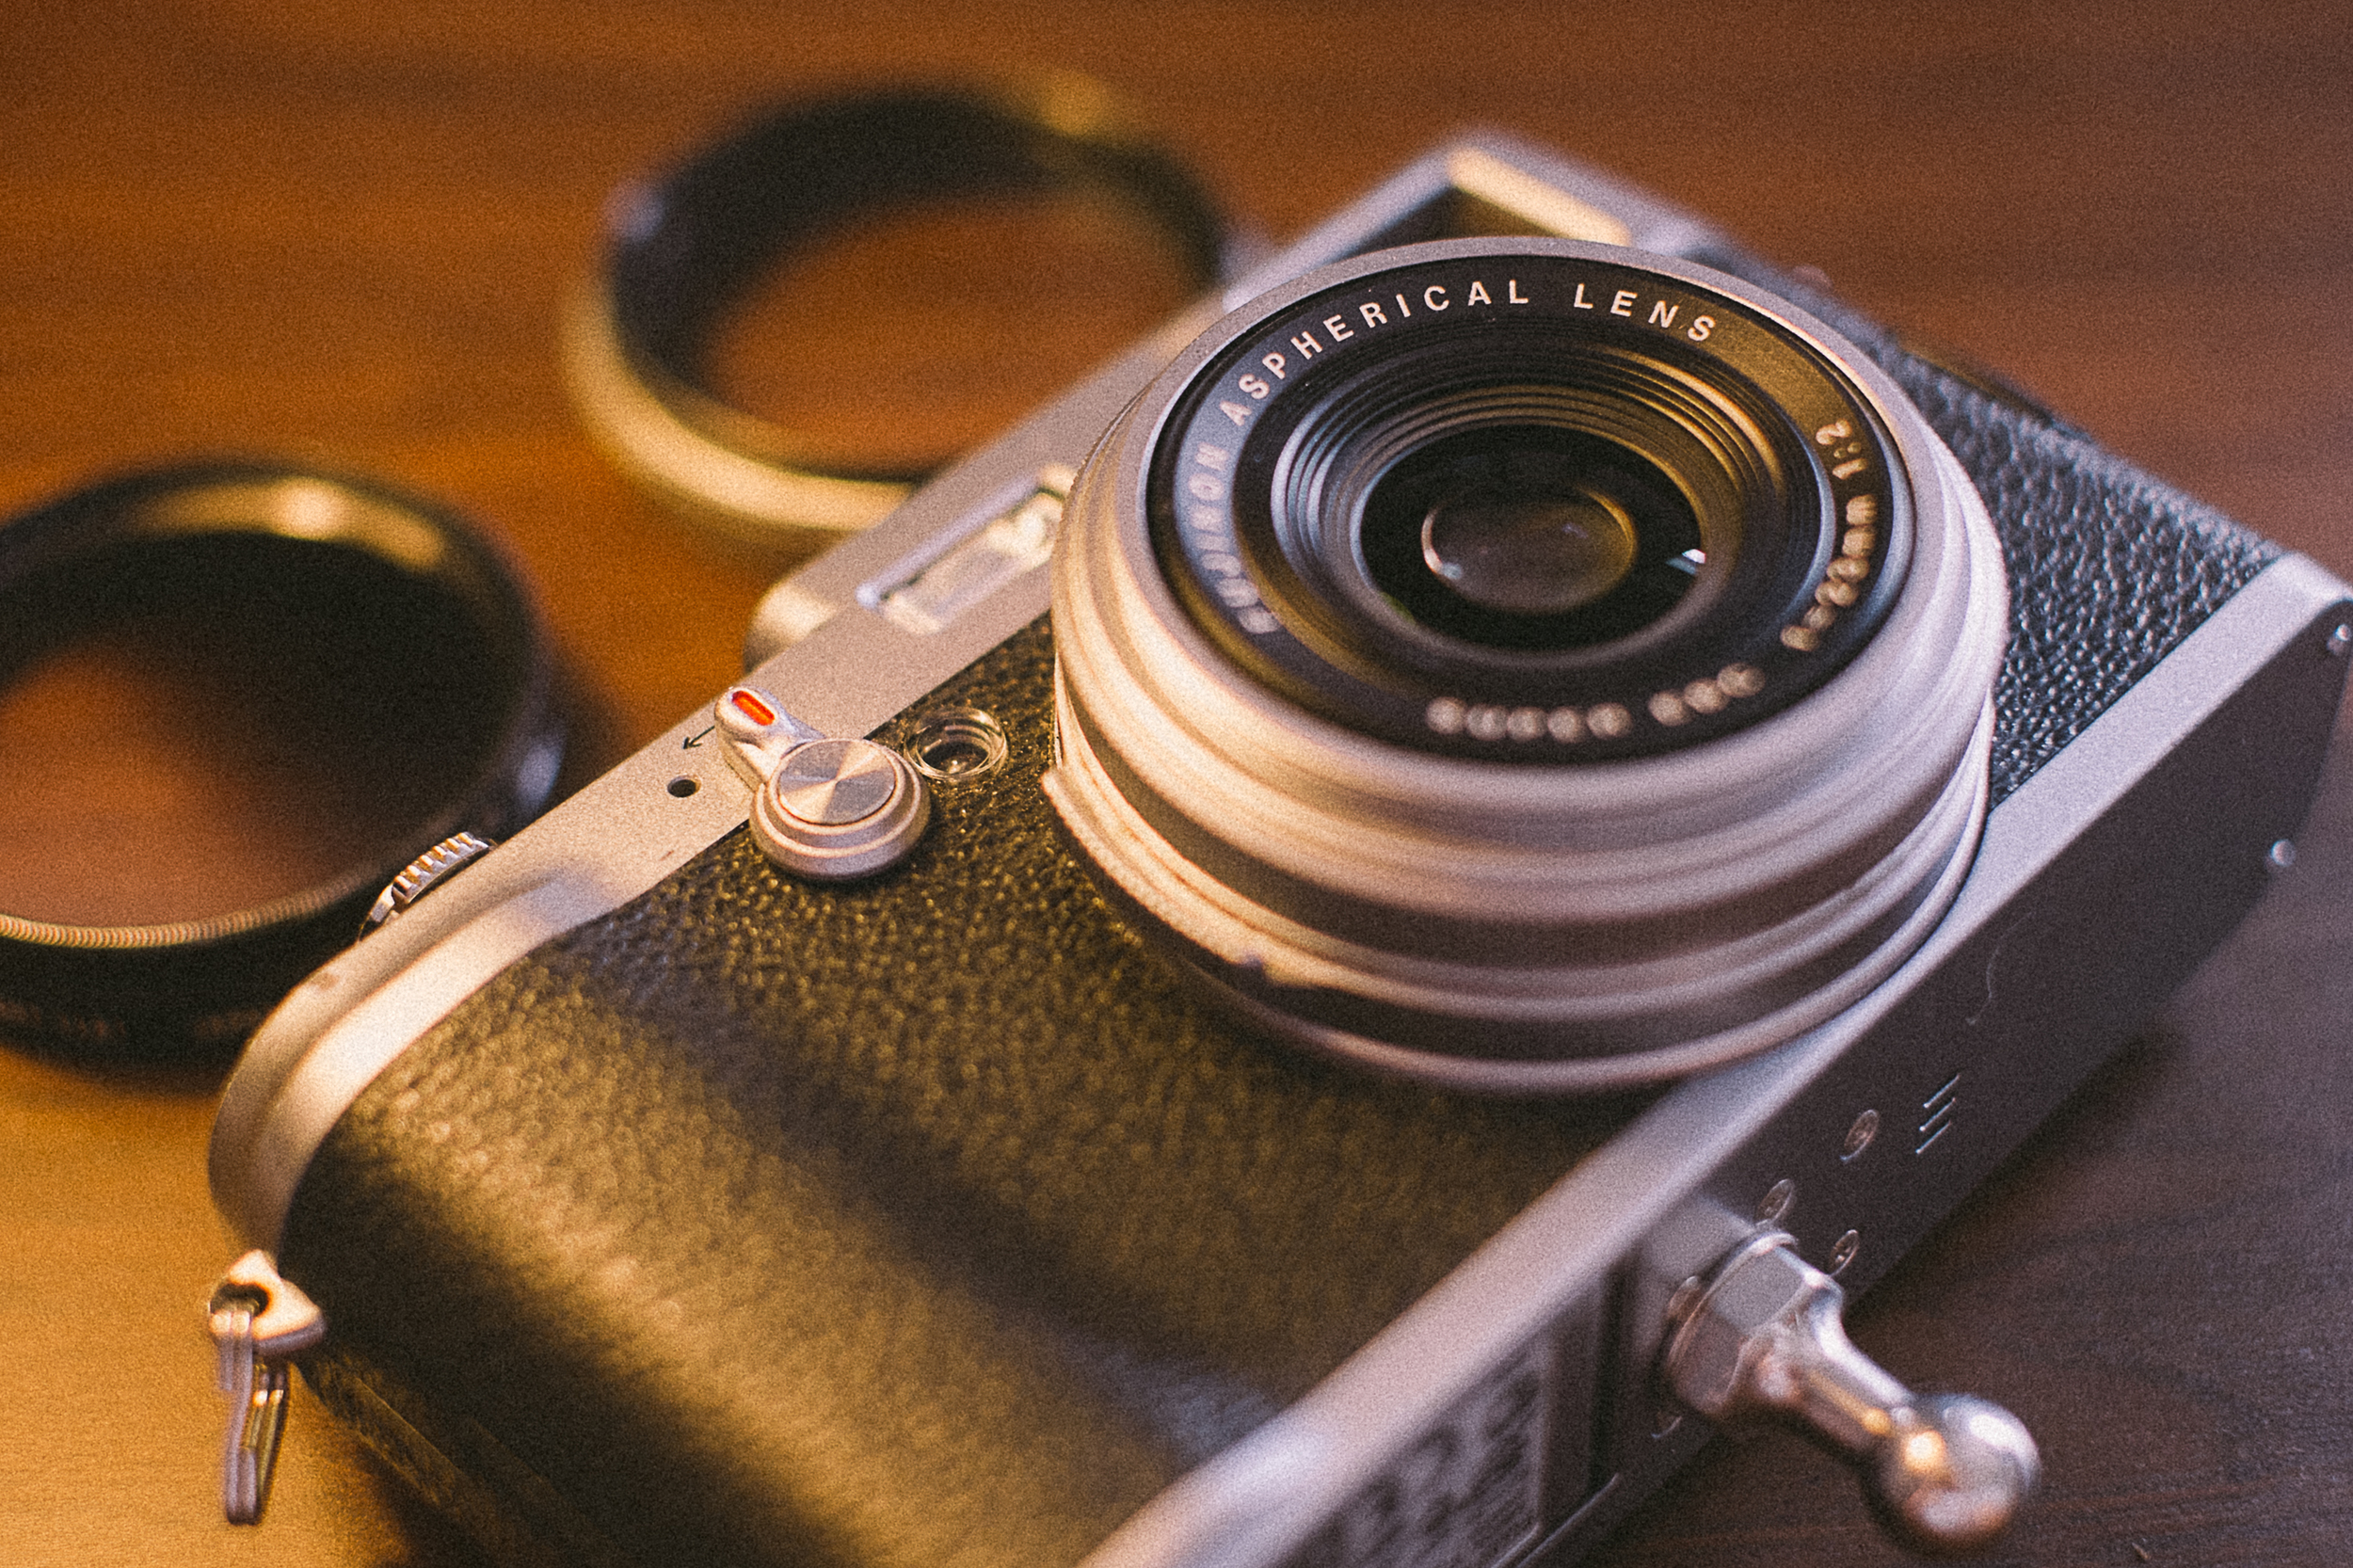 The original Fuji X100, mine is now well worn but still my go-to choice for discreet street photography.